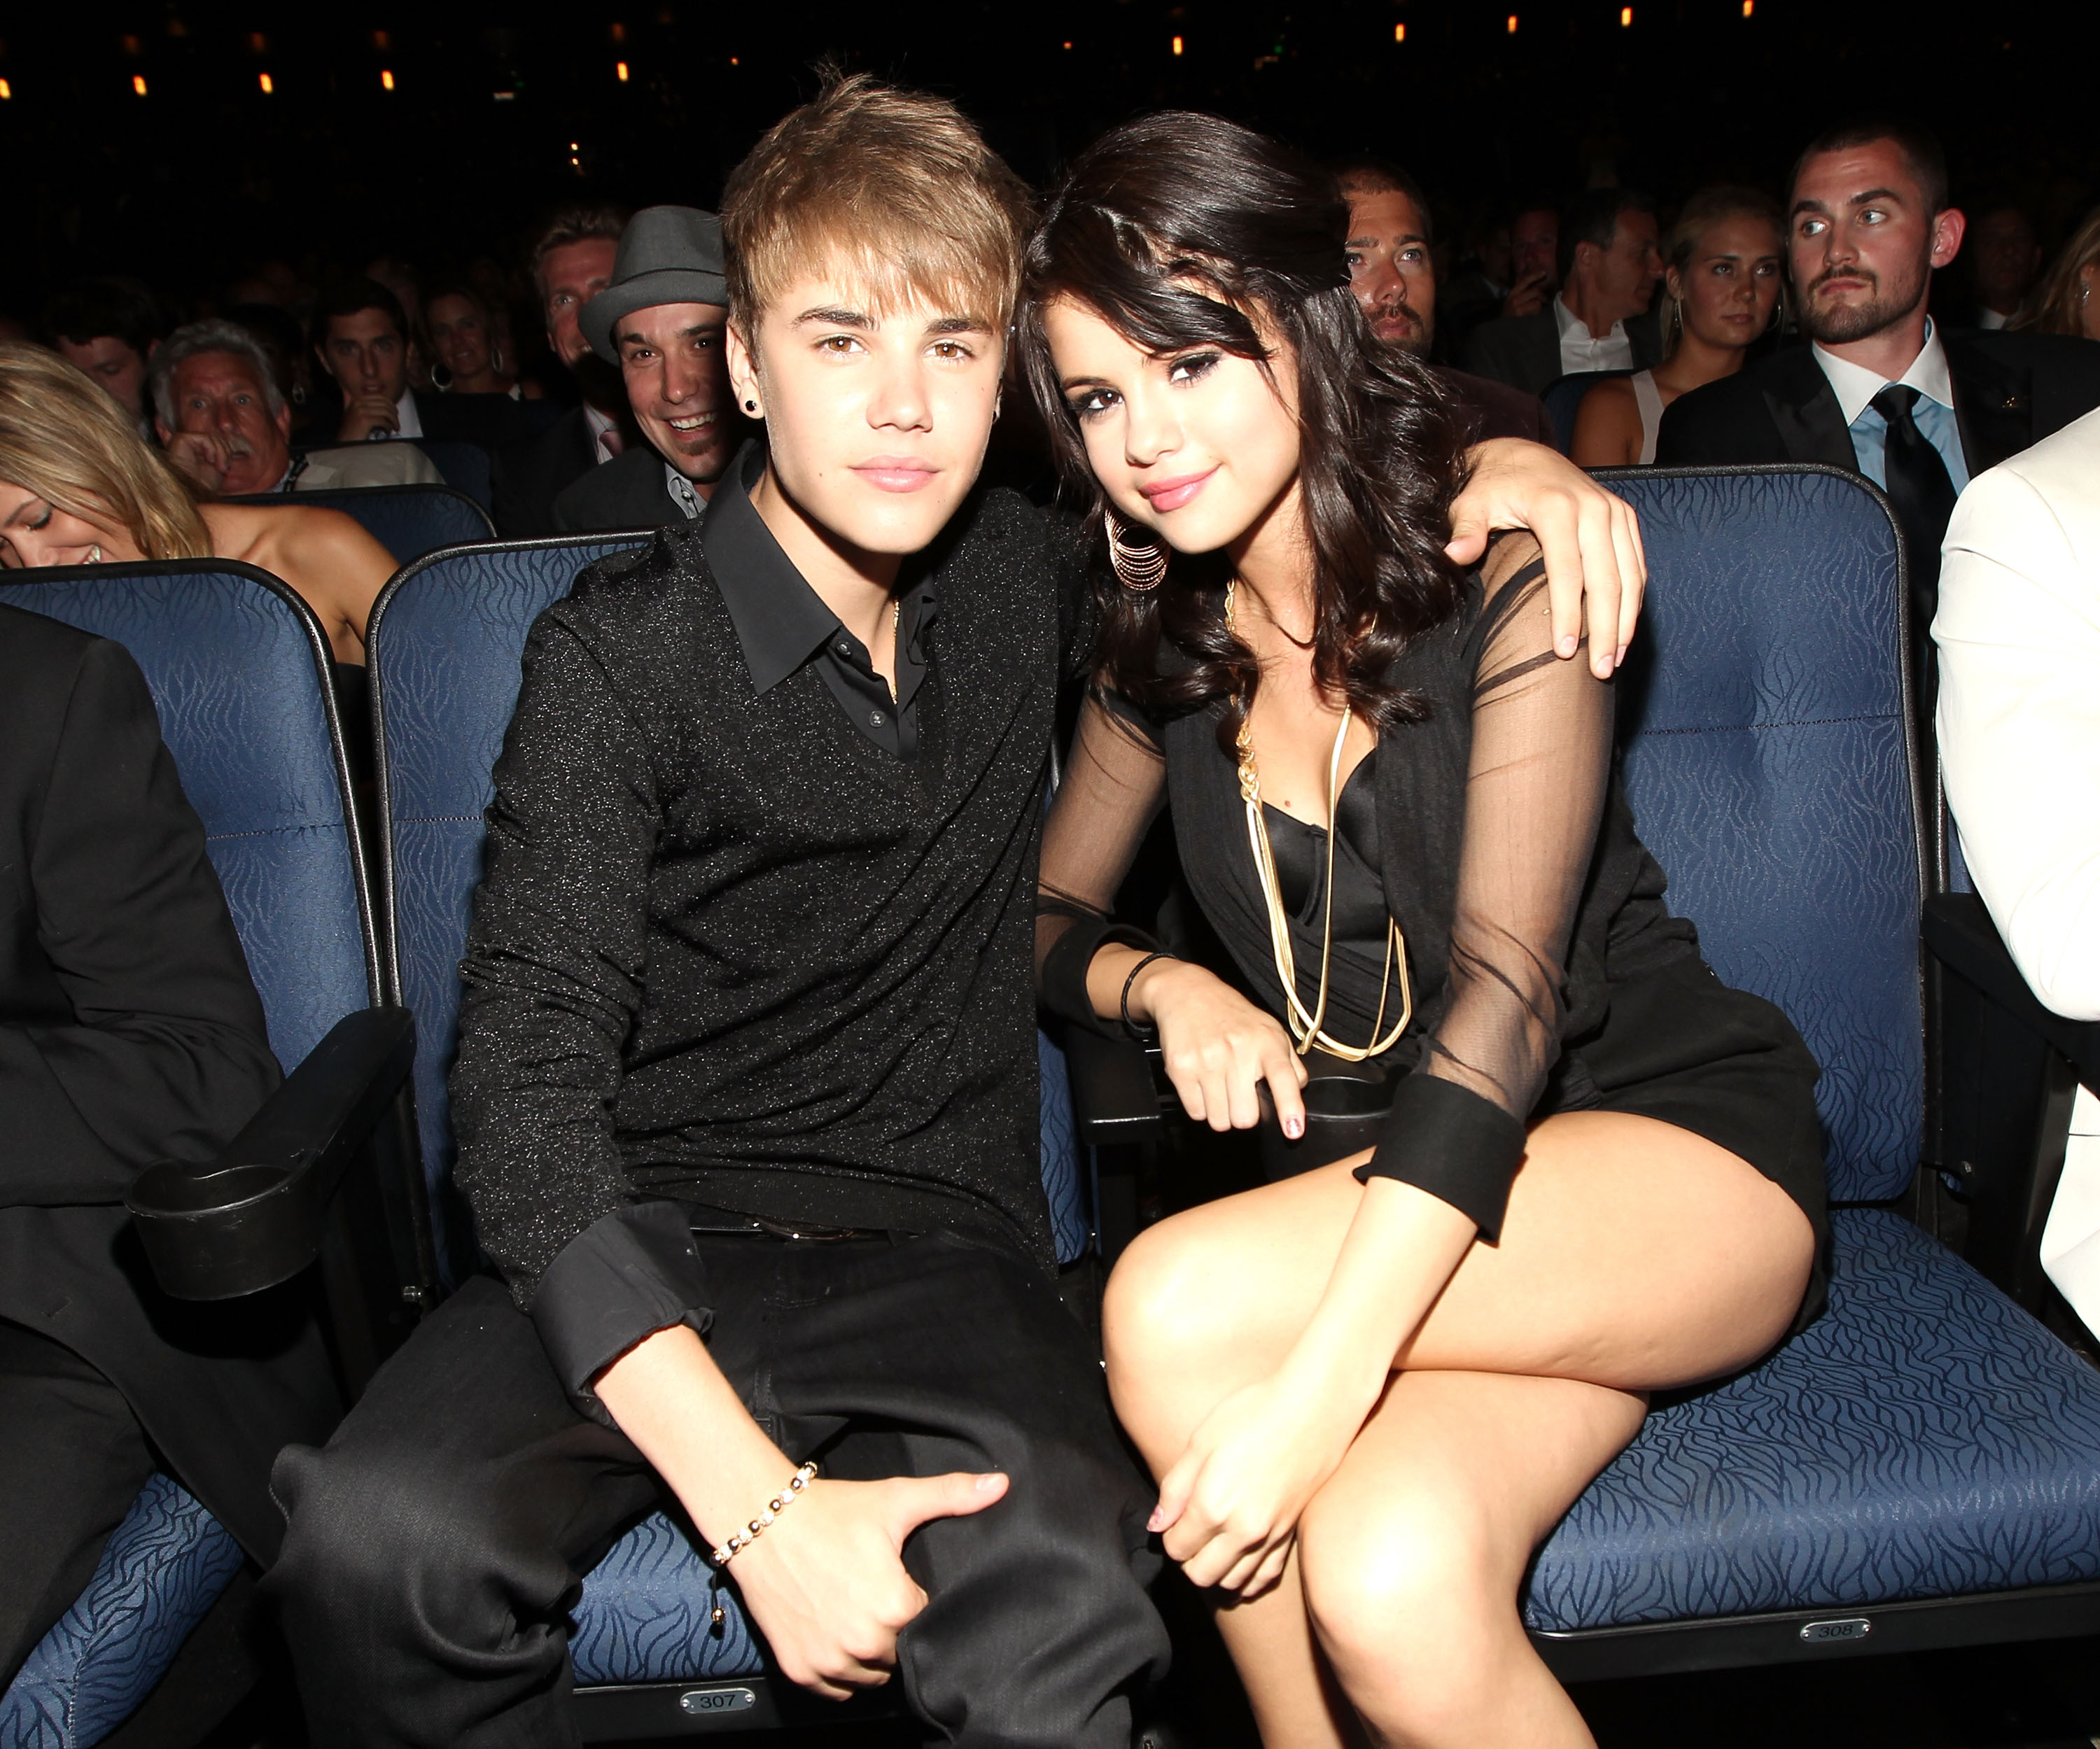 Singers Justin Bieber and Selena Gomez attend The 2011 ESPY Awards at Nokia Theatre L.A. Live on July 13, 2011 in Los Angeles, California.